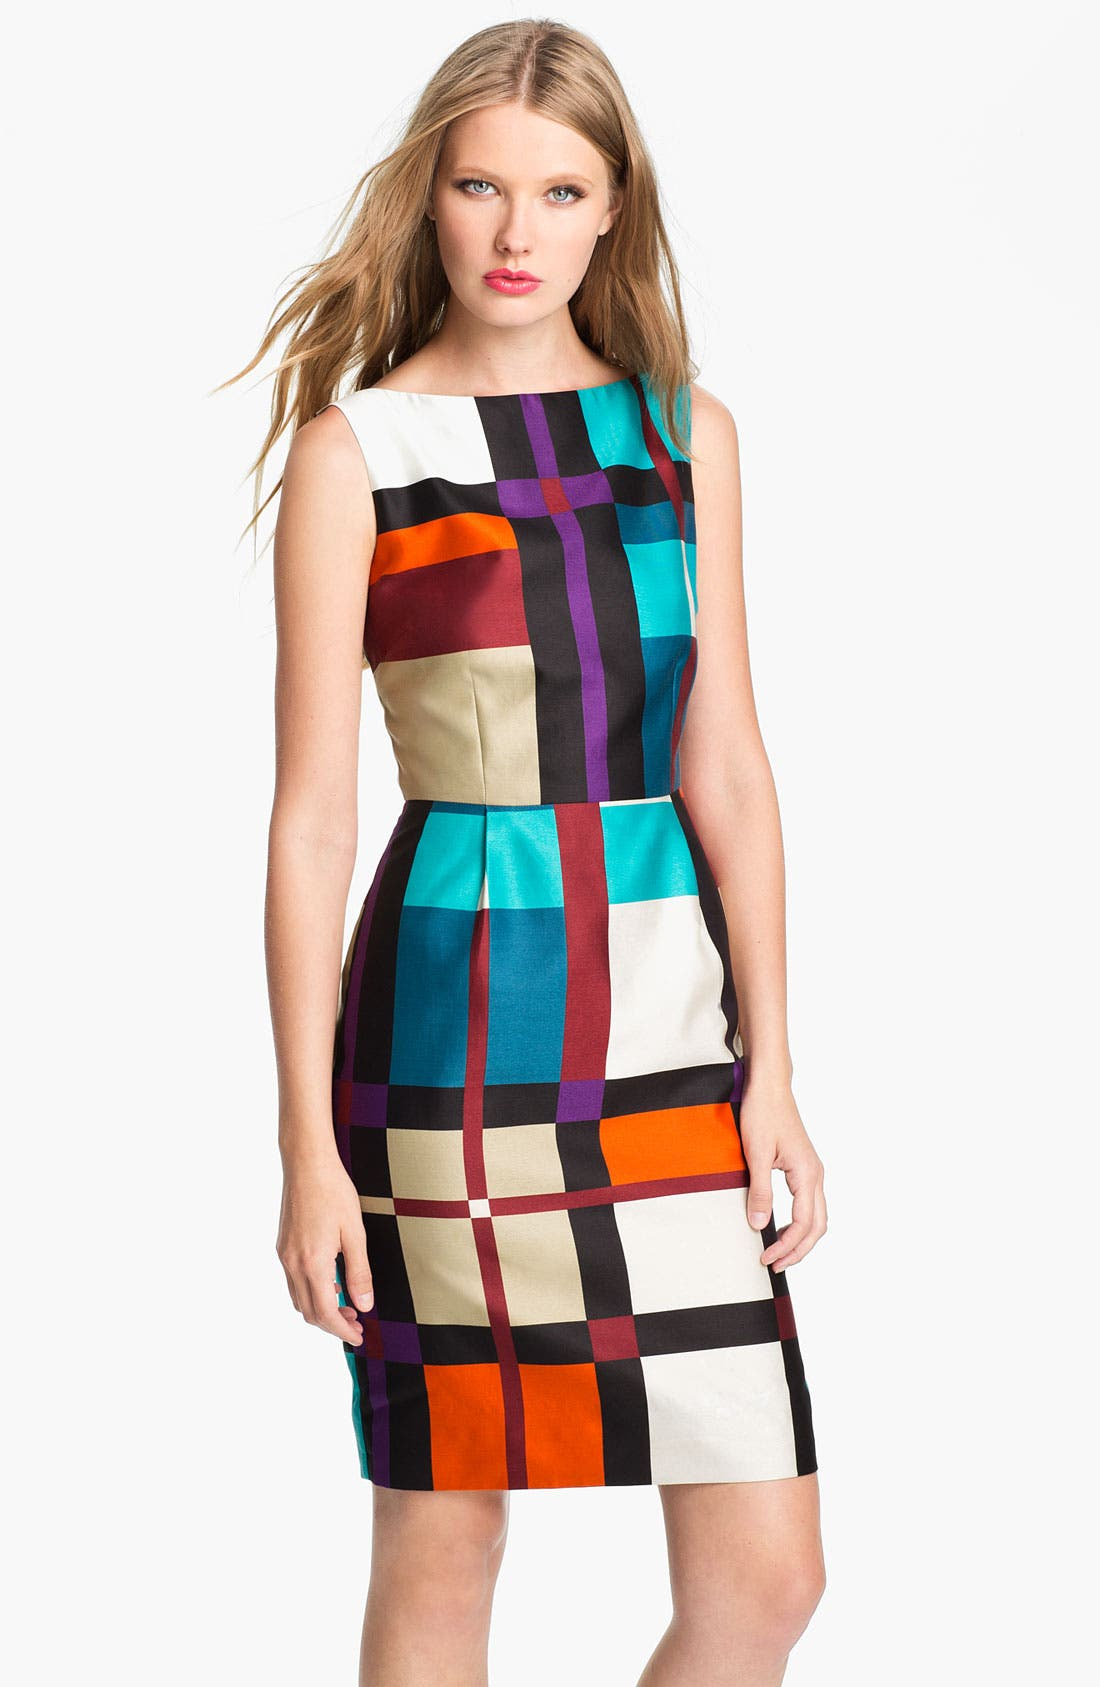 Alternate Image 1 Selected - kate spade new york 'purdy' cotton & silk sheath dress (Nordstrom Exclusive)